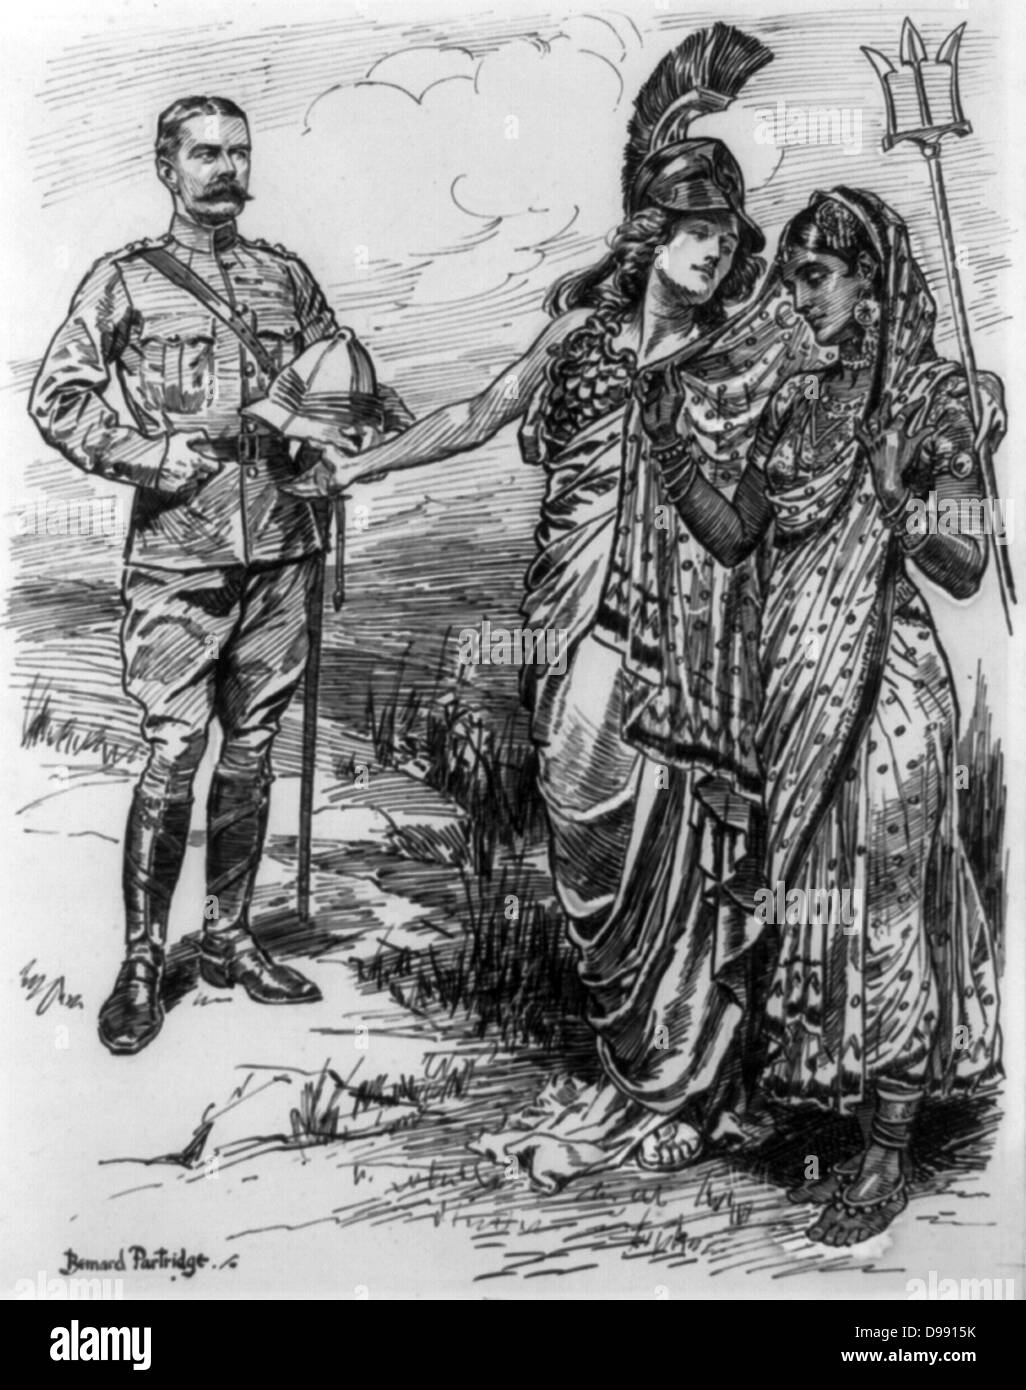 Britannia, holding her trident, introduces Lord Kitchener to a modestly veiled India. Horatio Herbert Kitchener - Stock Image